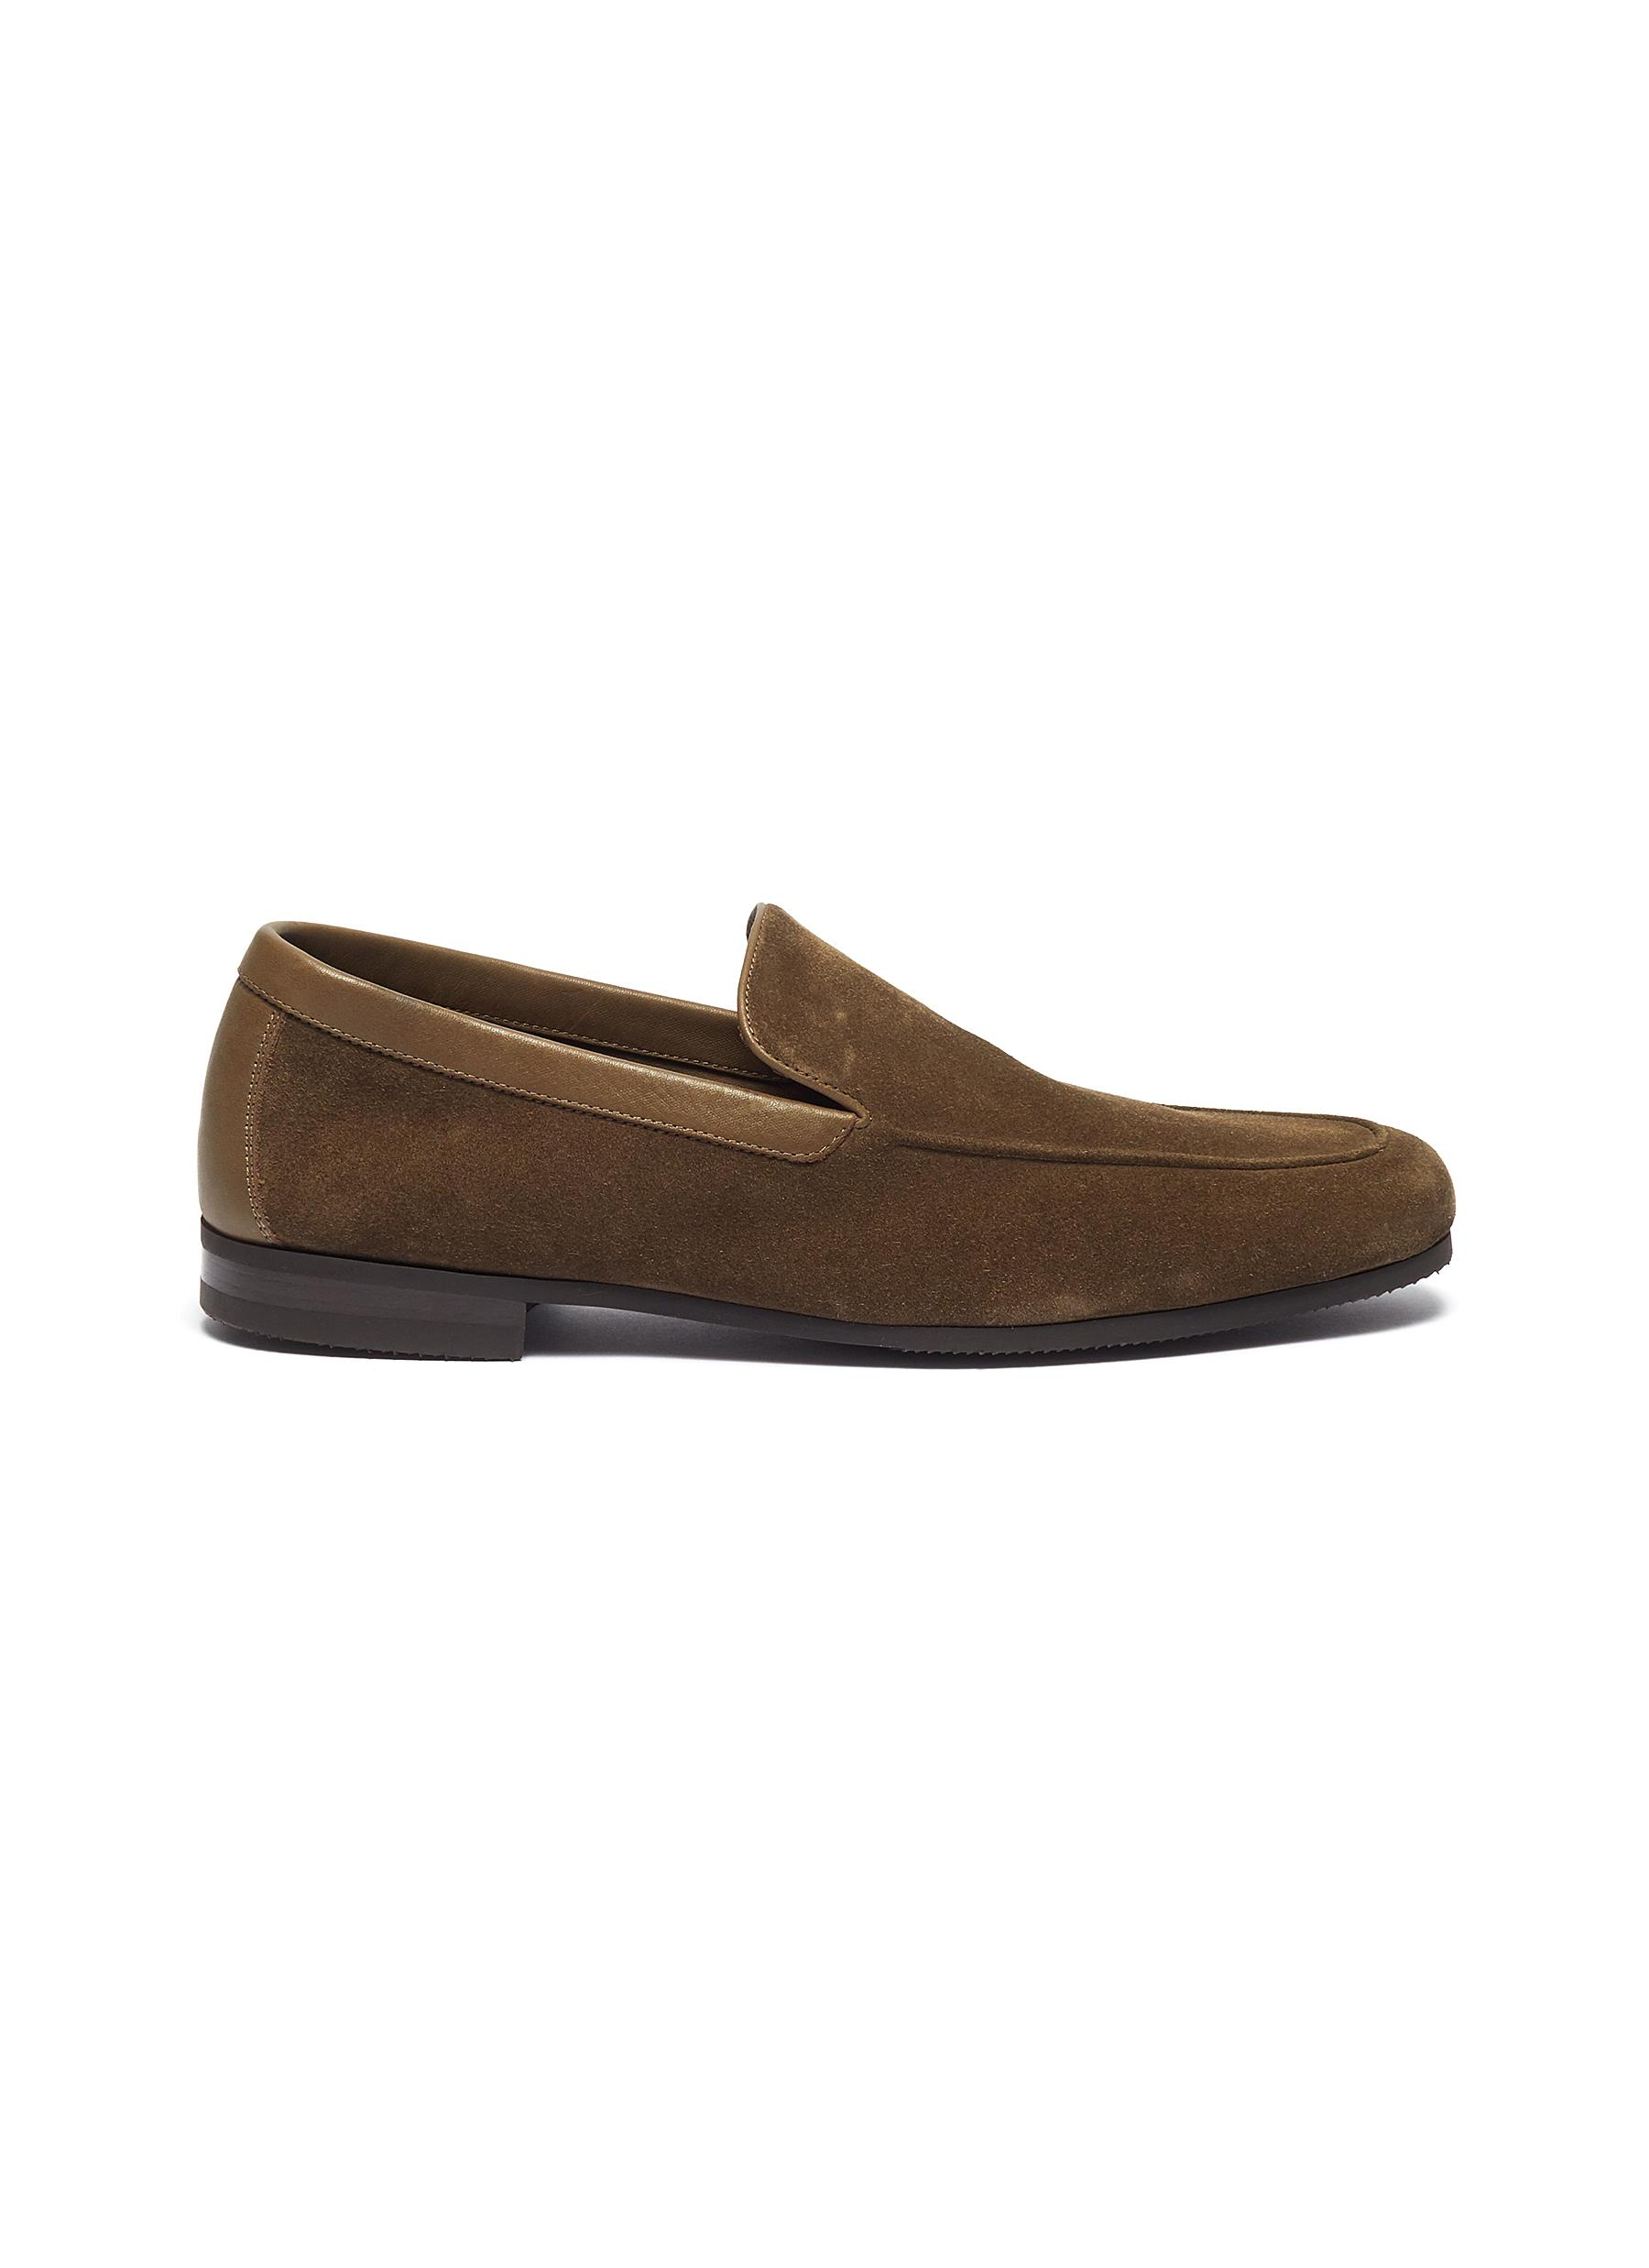 'Tyne' suede loafers